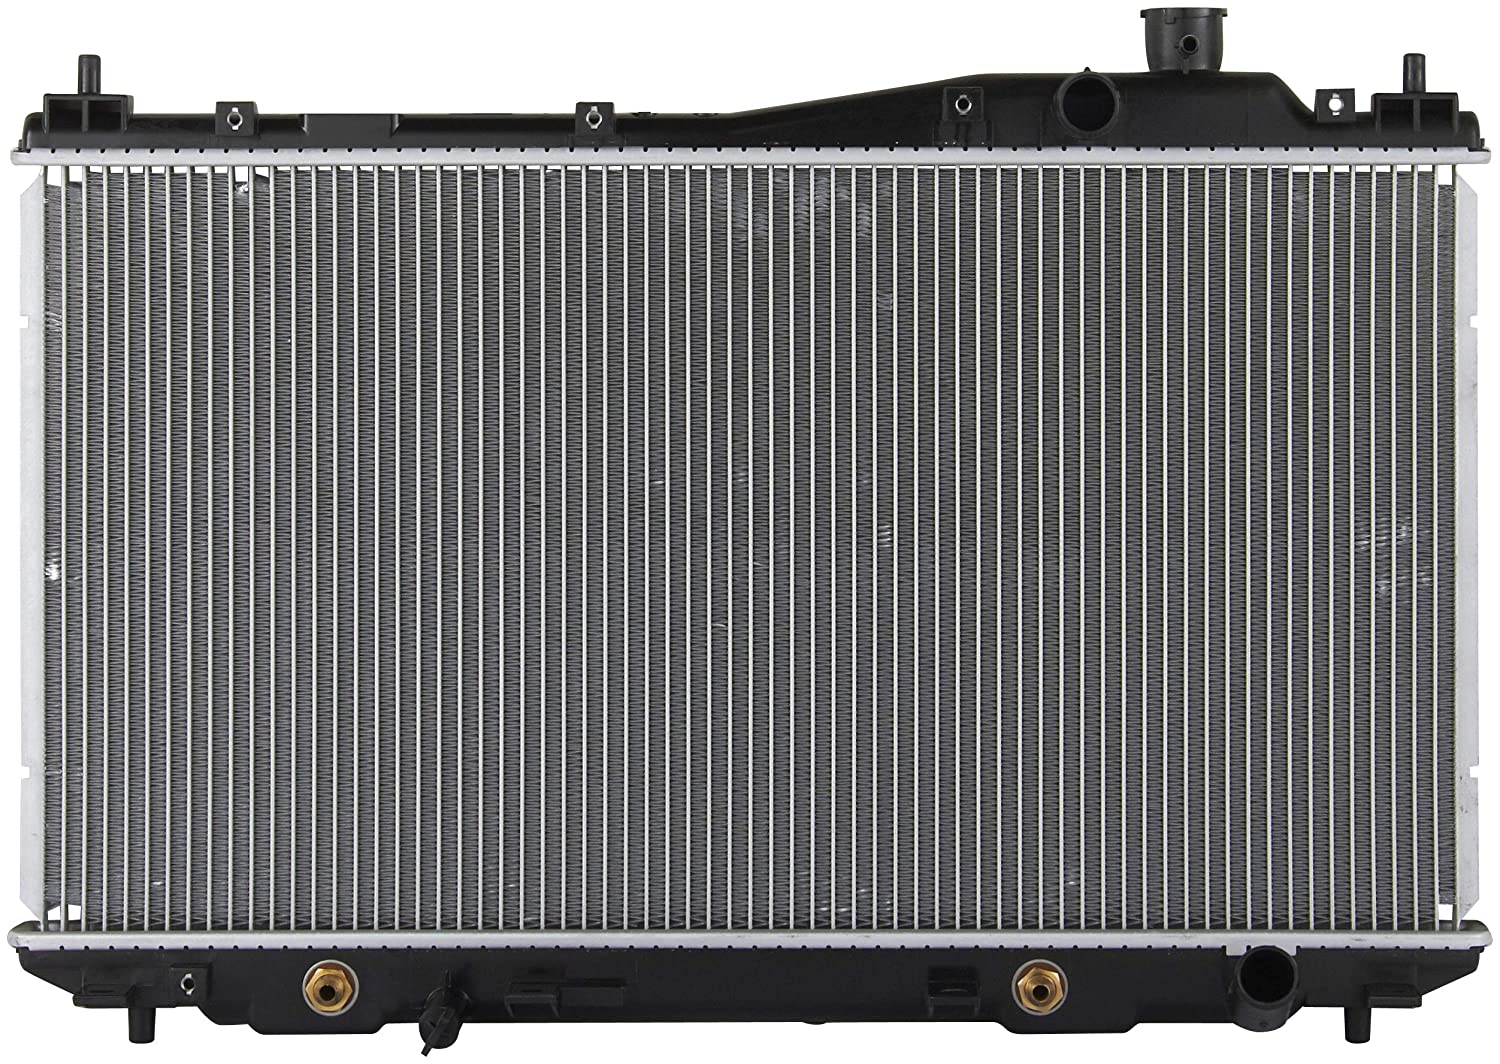 Amazon.com: Spectra Premium CU2354 Complete Radiator for Honda Civic:  Automotive